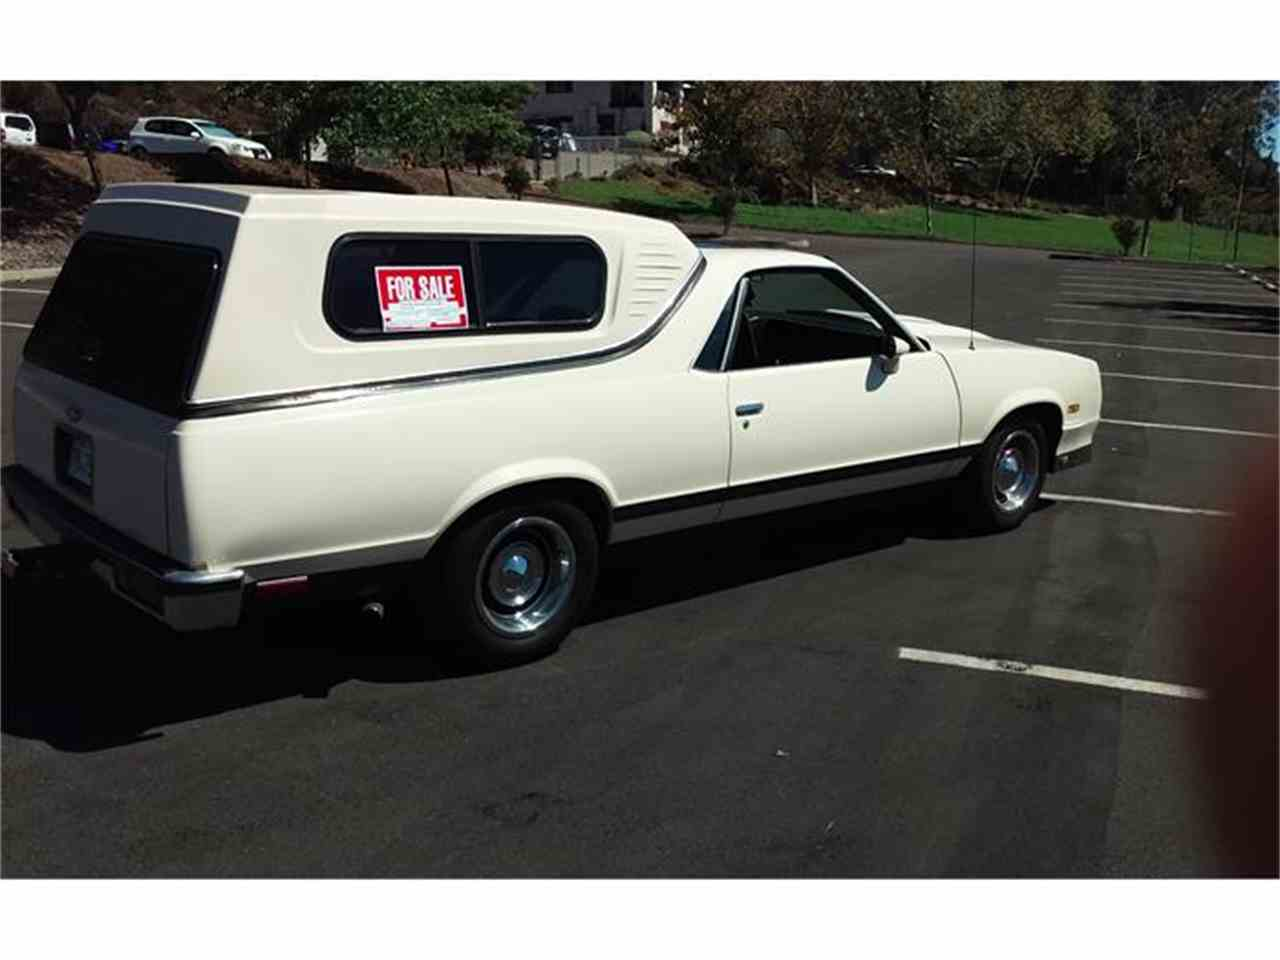 Large Picture of '83 Chevrolet El Camino located in California Offered by a Private Seller - J05V